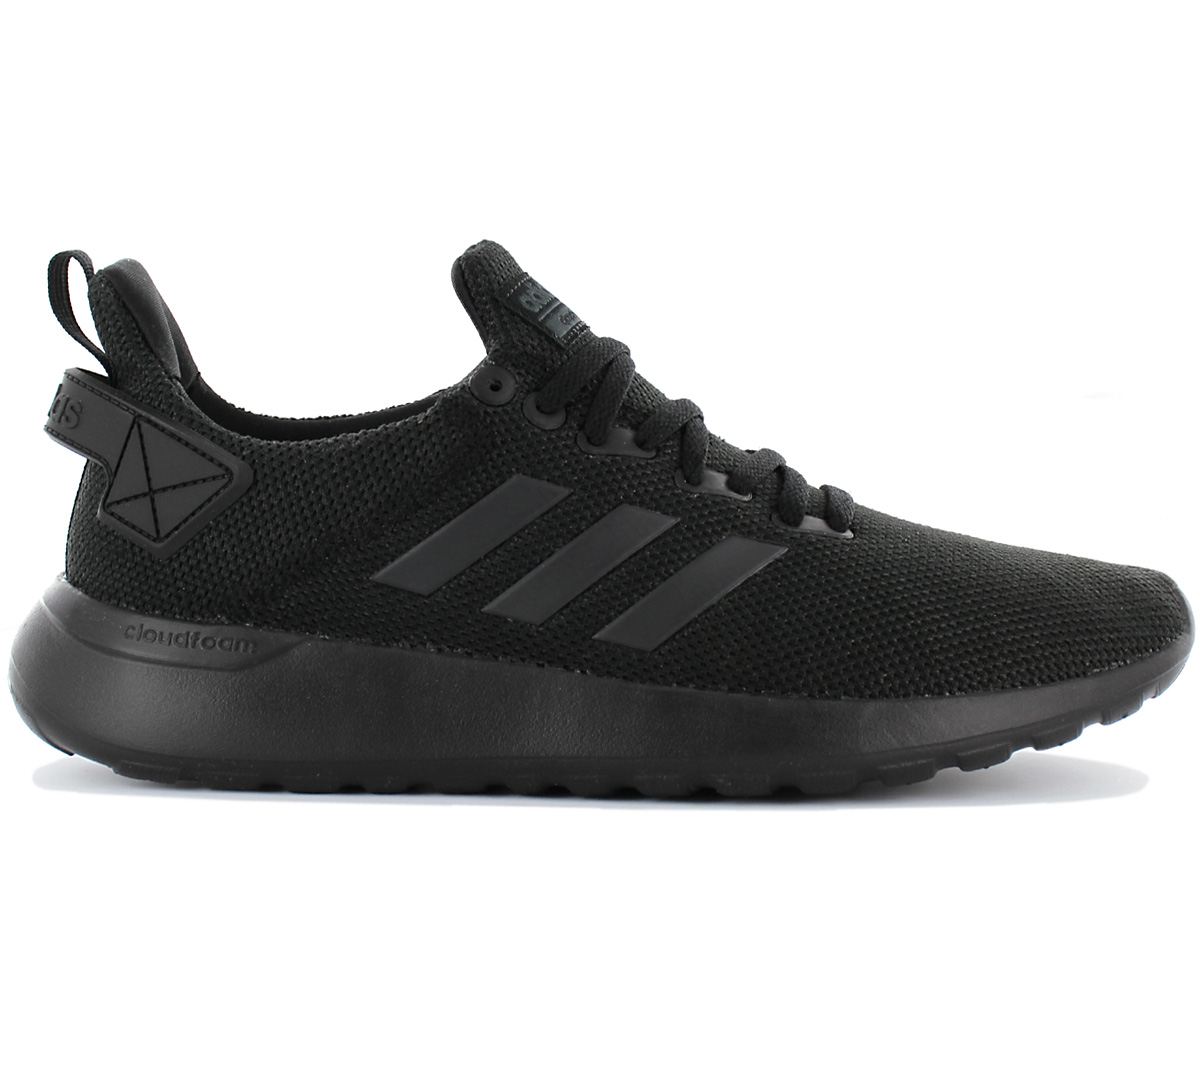 Details about Adidas Cloudfoam Lite Racer Byd Men's Sneakers Trainers AC7828